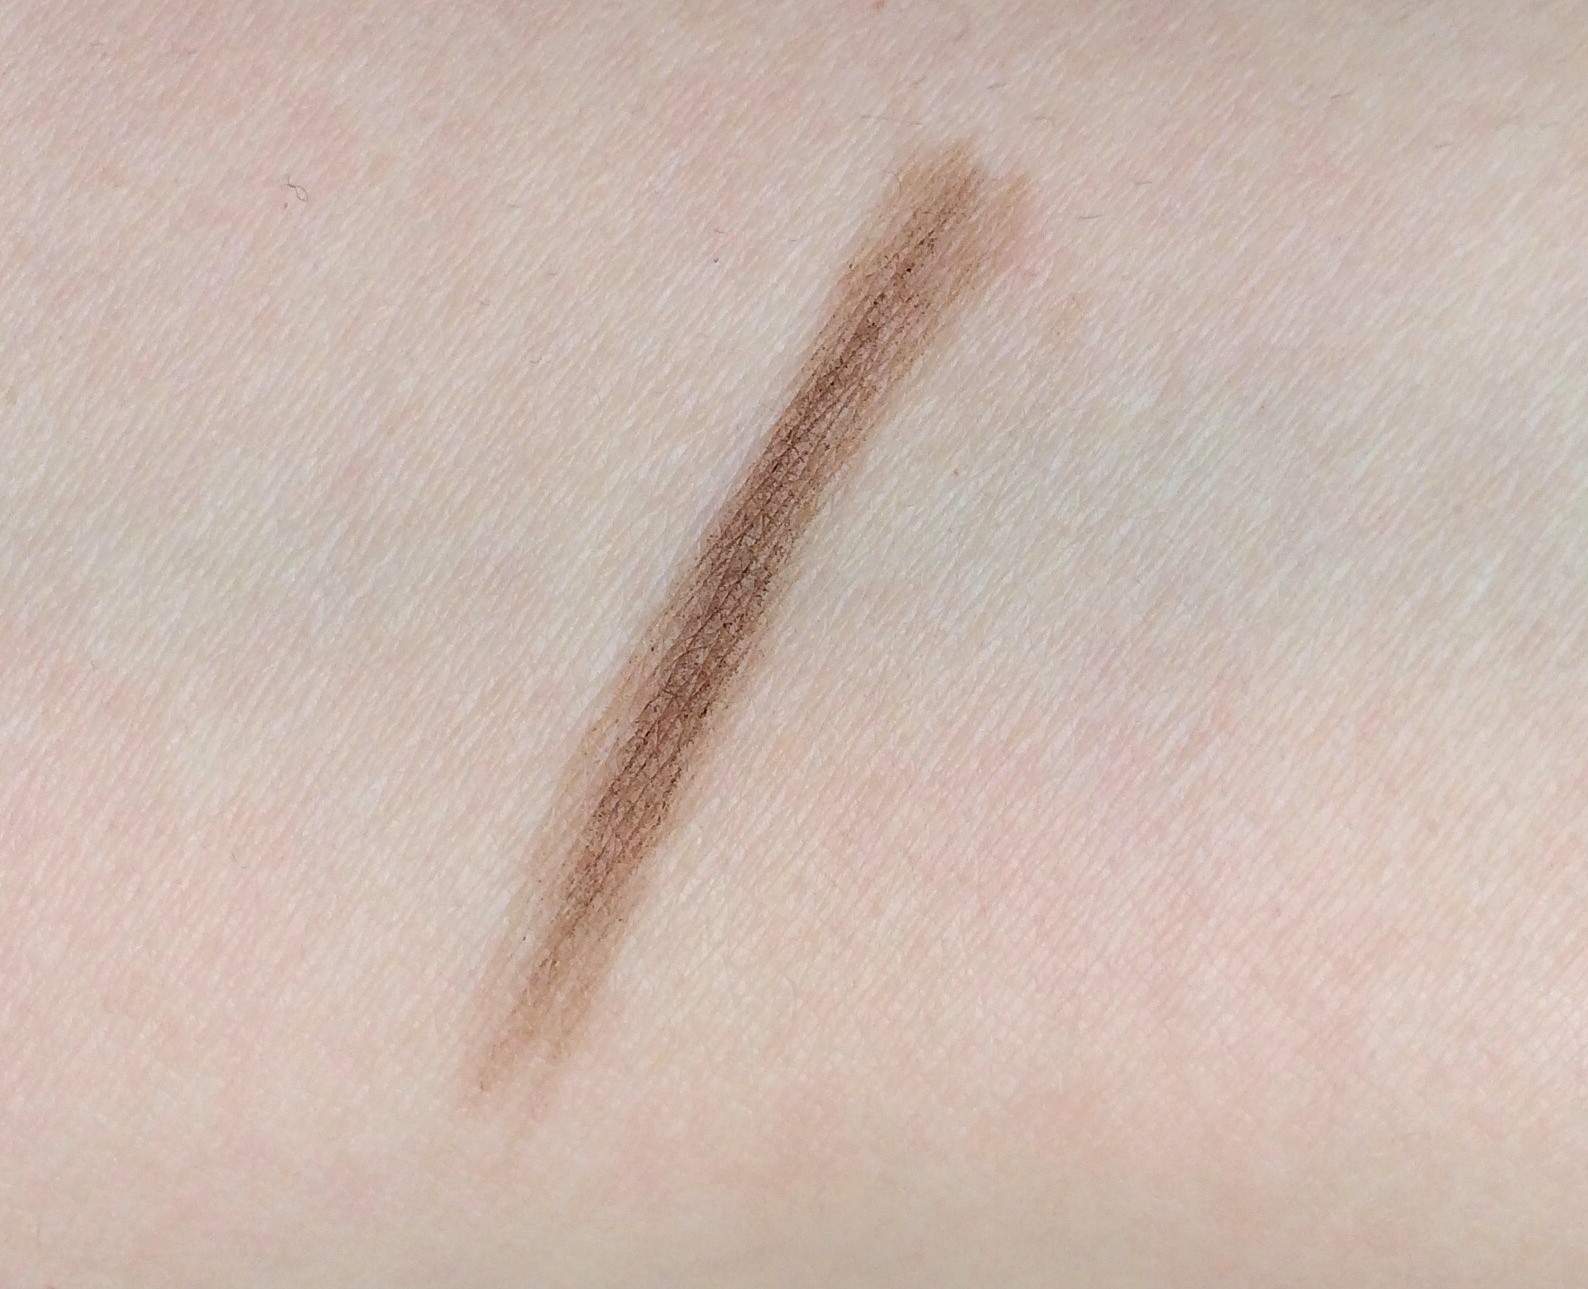 Maybelline Total Temptation Brow Definer Review (5)